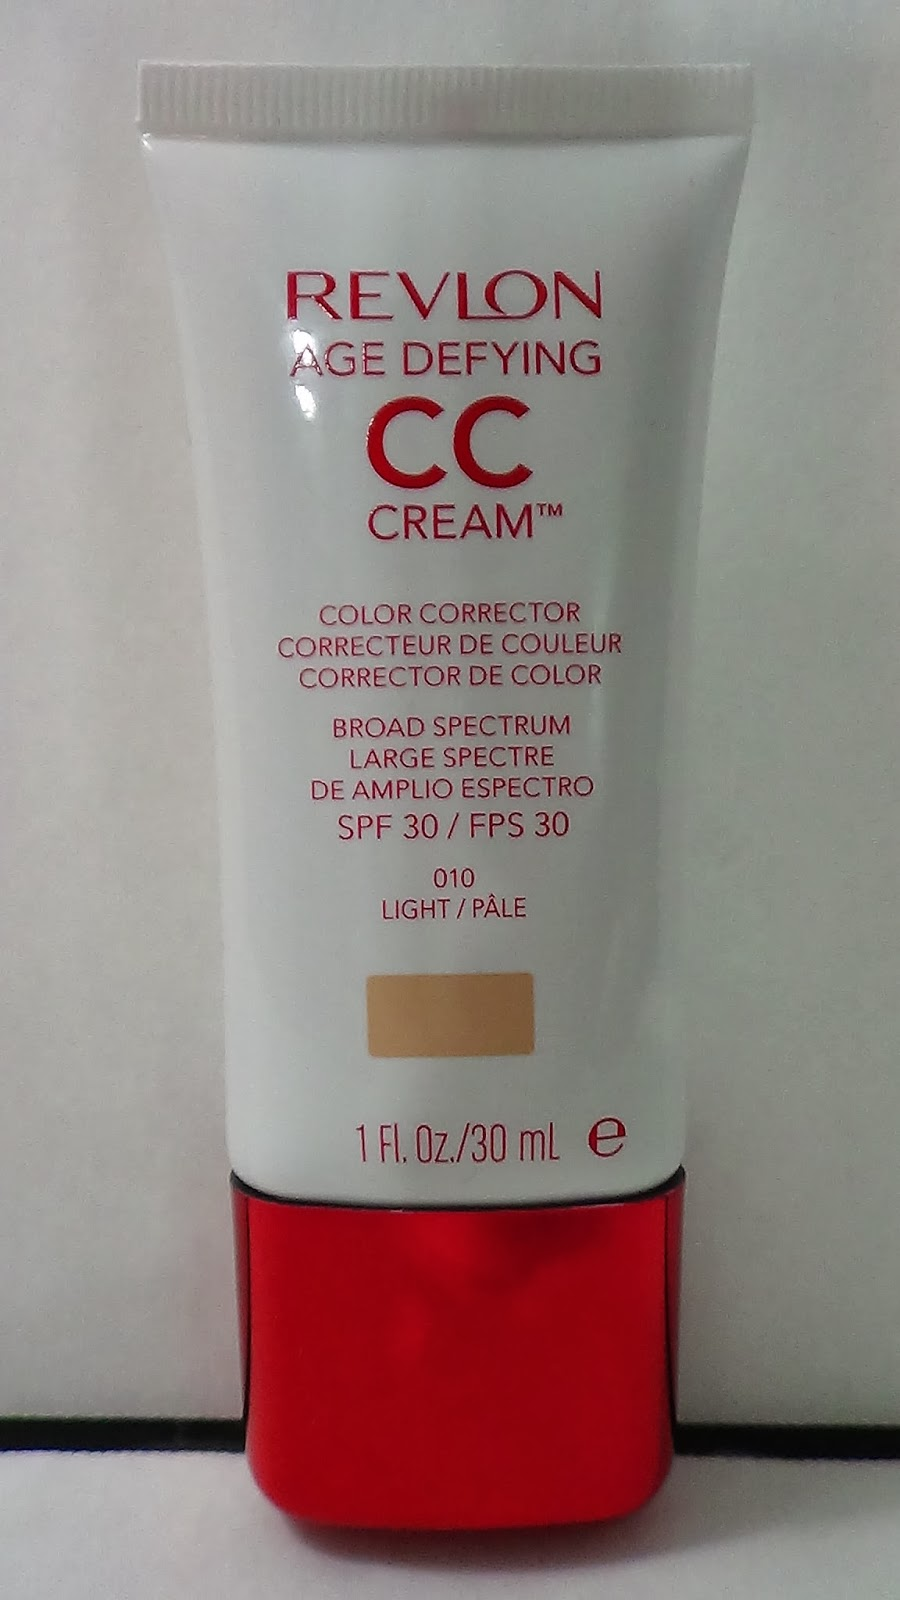 revlon cc cream coupon / sears coupons printable december 2018